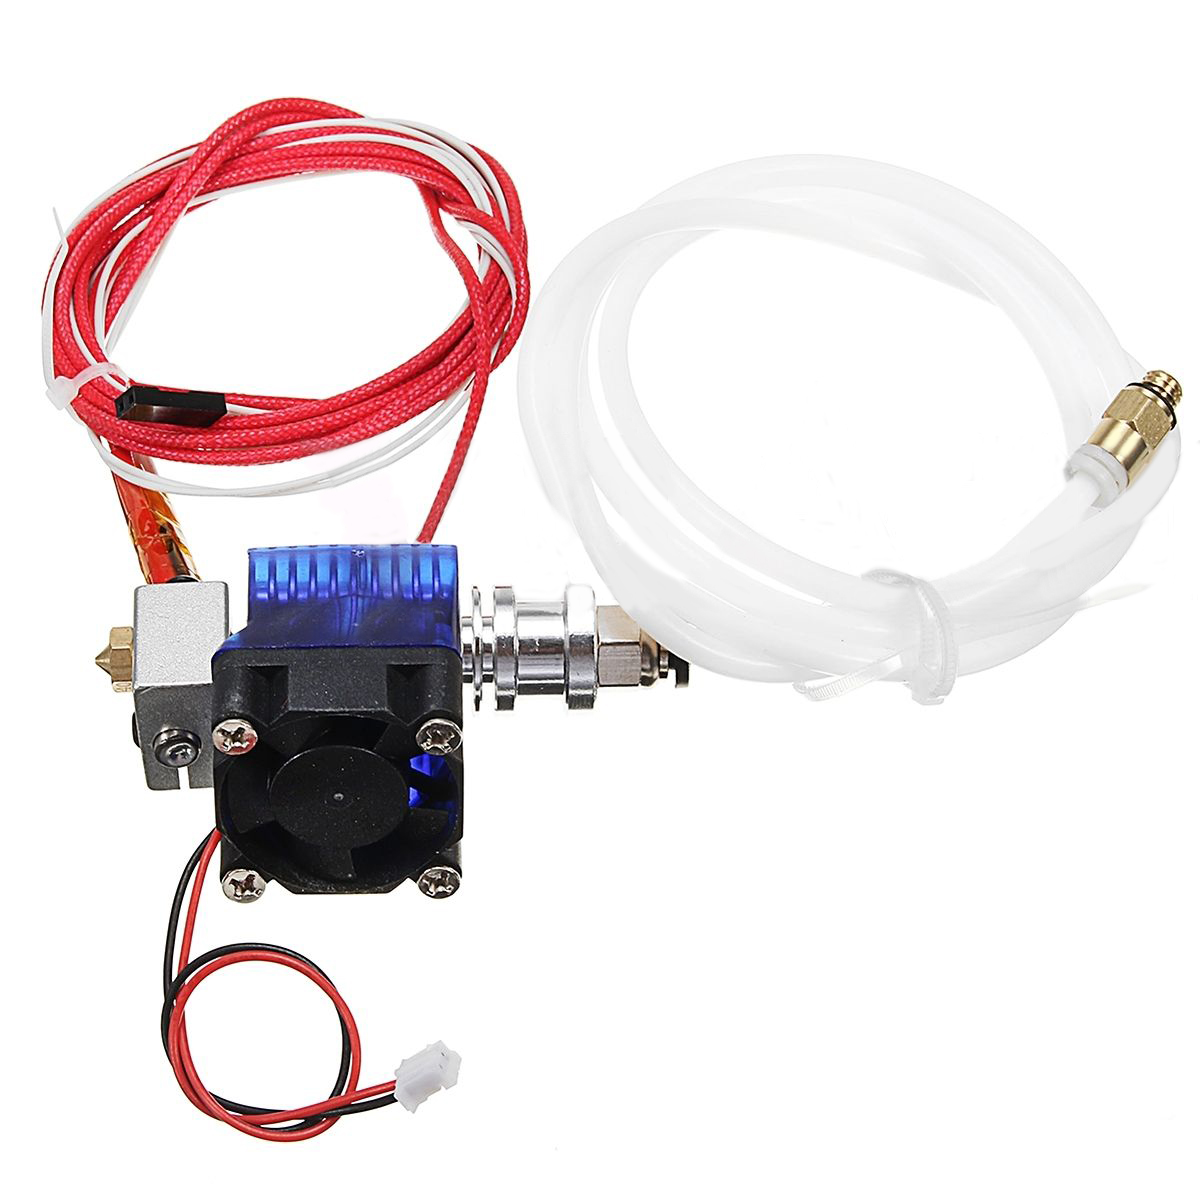 New 12V E3D V6 3D Printer Extruder J-head Hotend 0.4mm Nozzle For 1.75mm Filament Fan flsun 3d printer big pulley kossel 3d printer with one roll filament sd card fast shipping